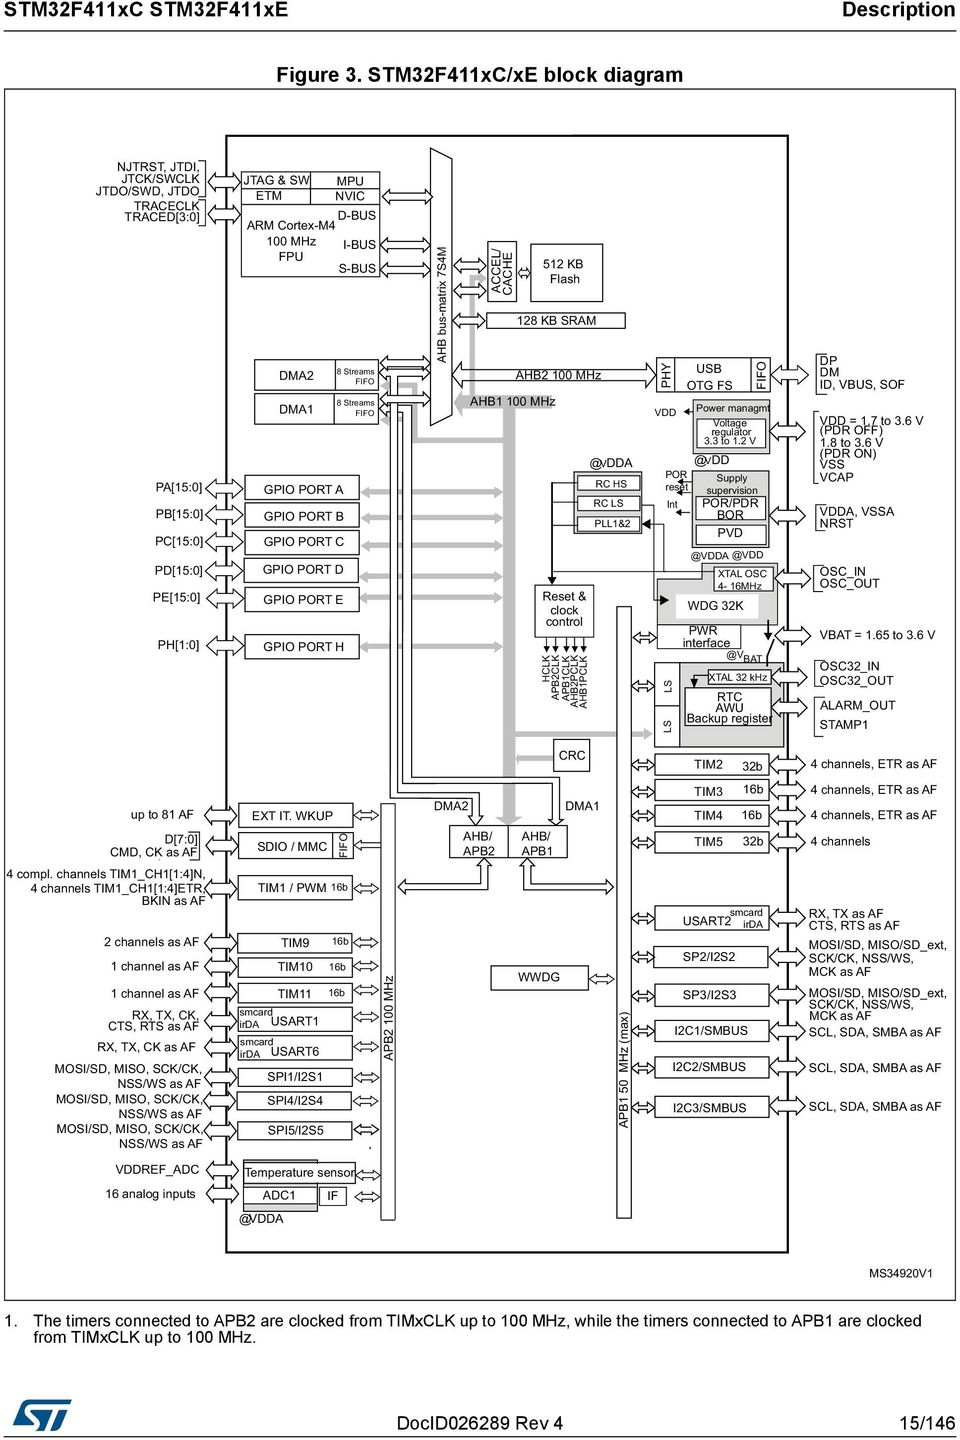 Stm32f411xc Stm32f411xe Pdf Rcs Prevents Triggering A Timer B Unless Is Triggered By The Timers Connected To Apb2 Are Clocked From Timxclk Up